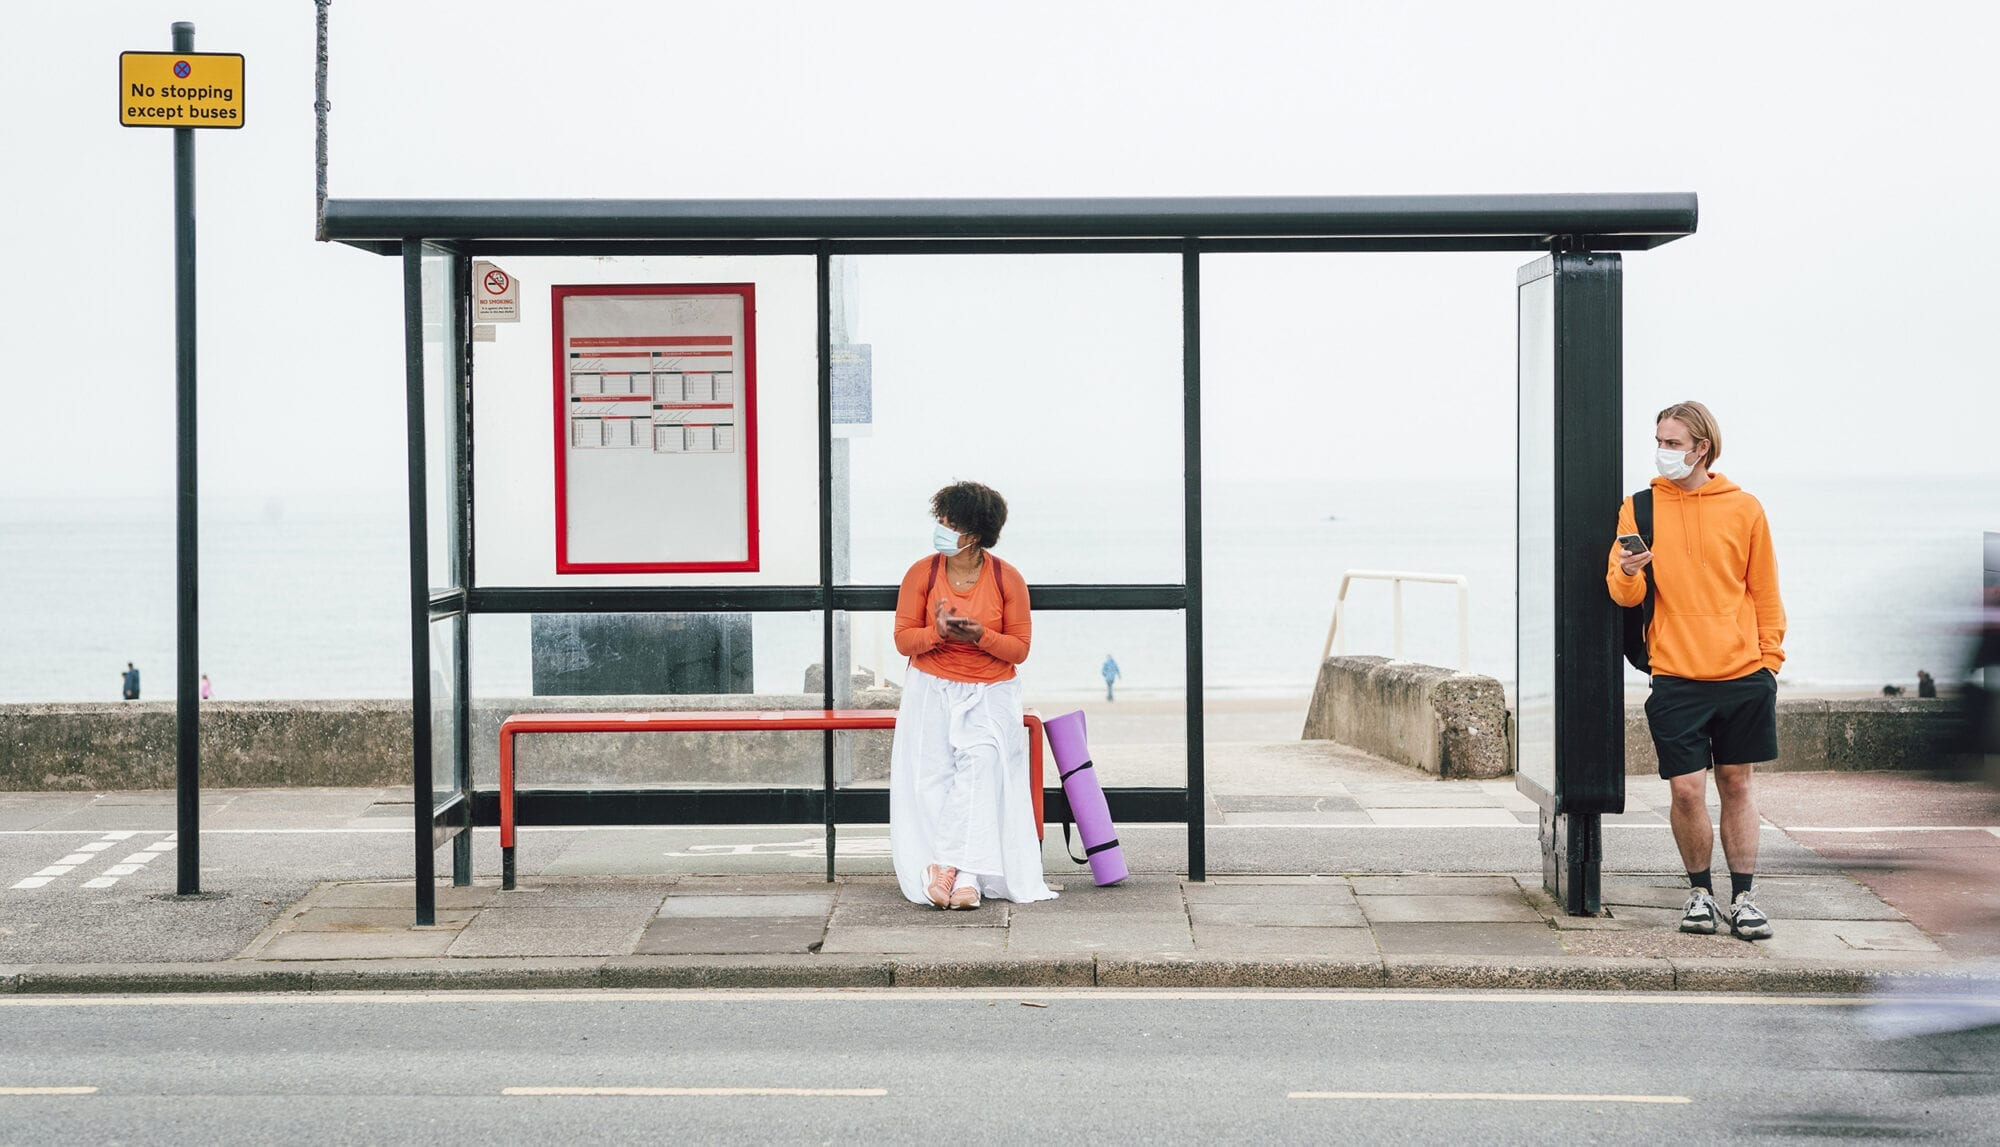 A woman of colour waits at a bus shelter by a road